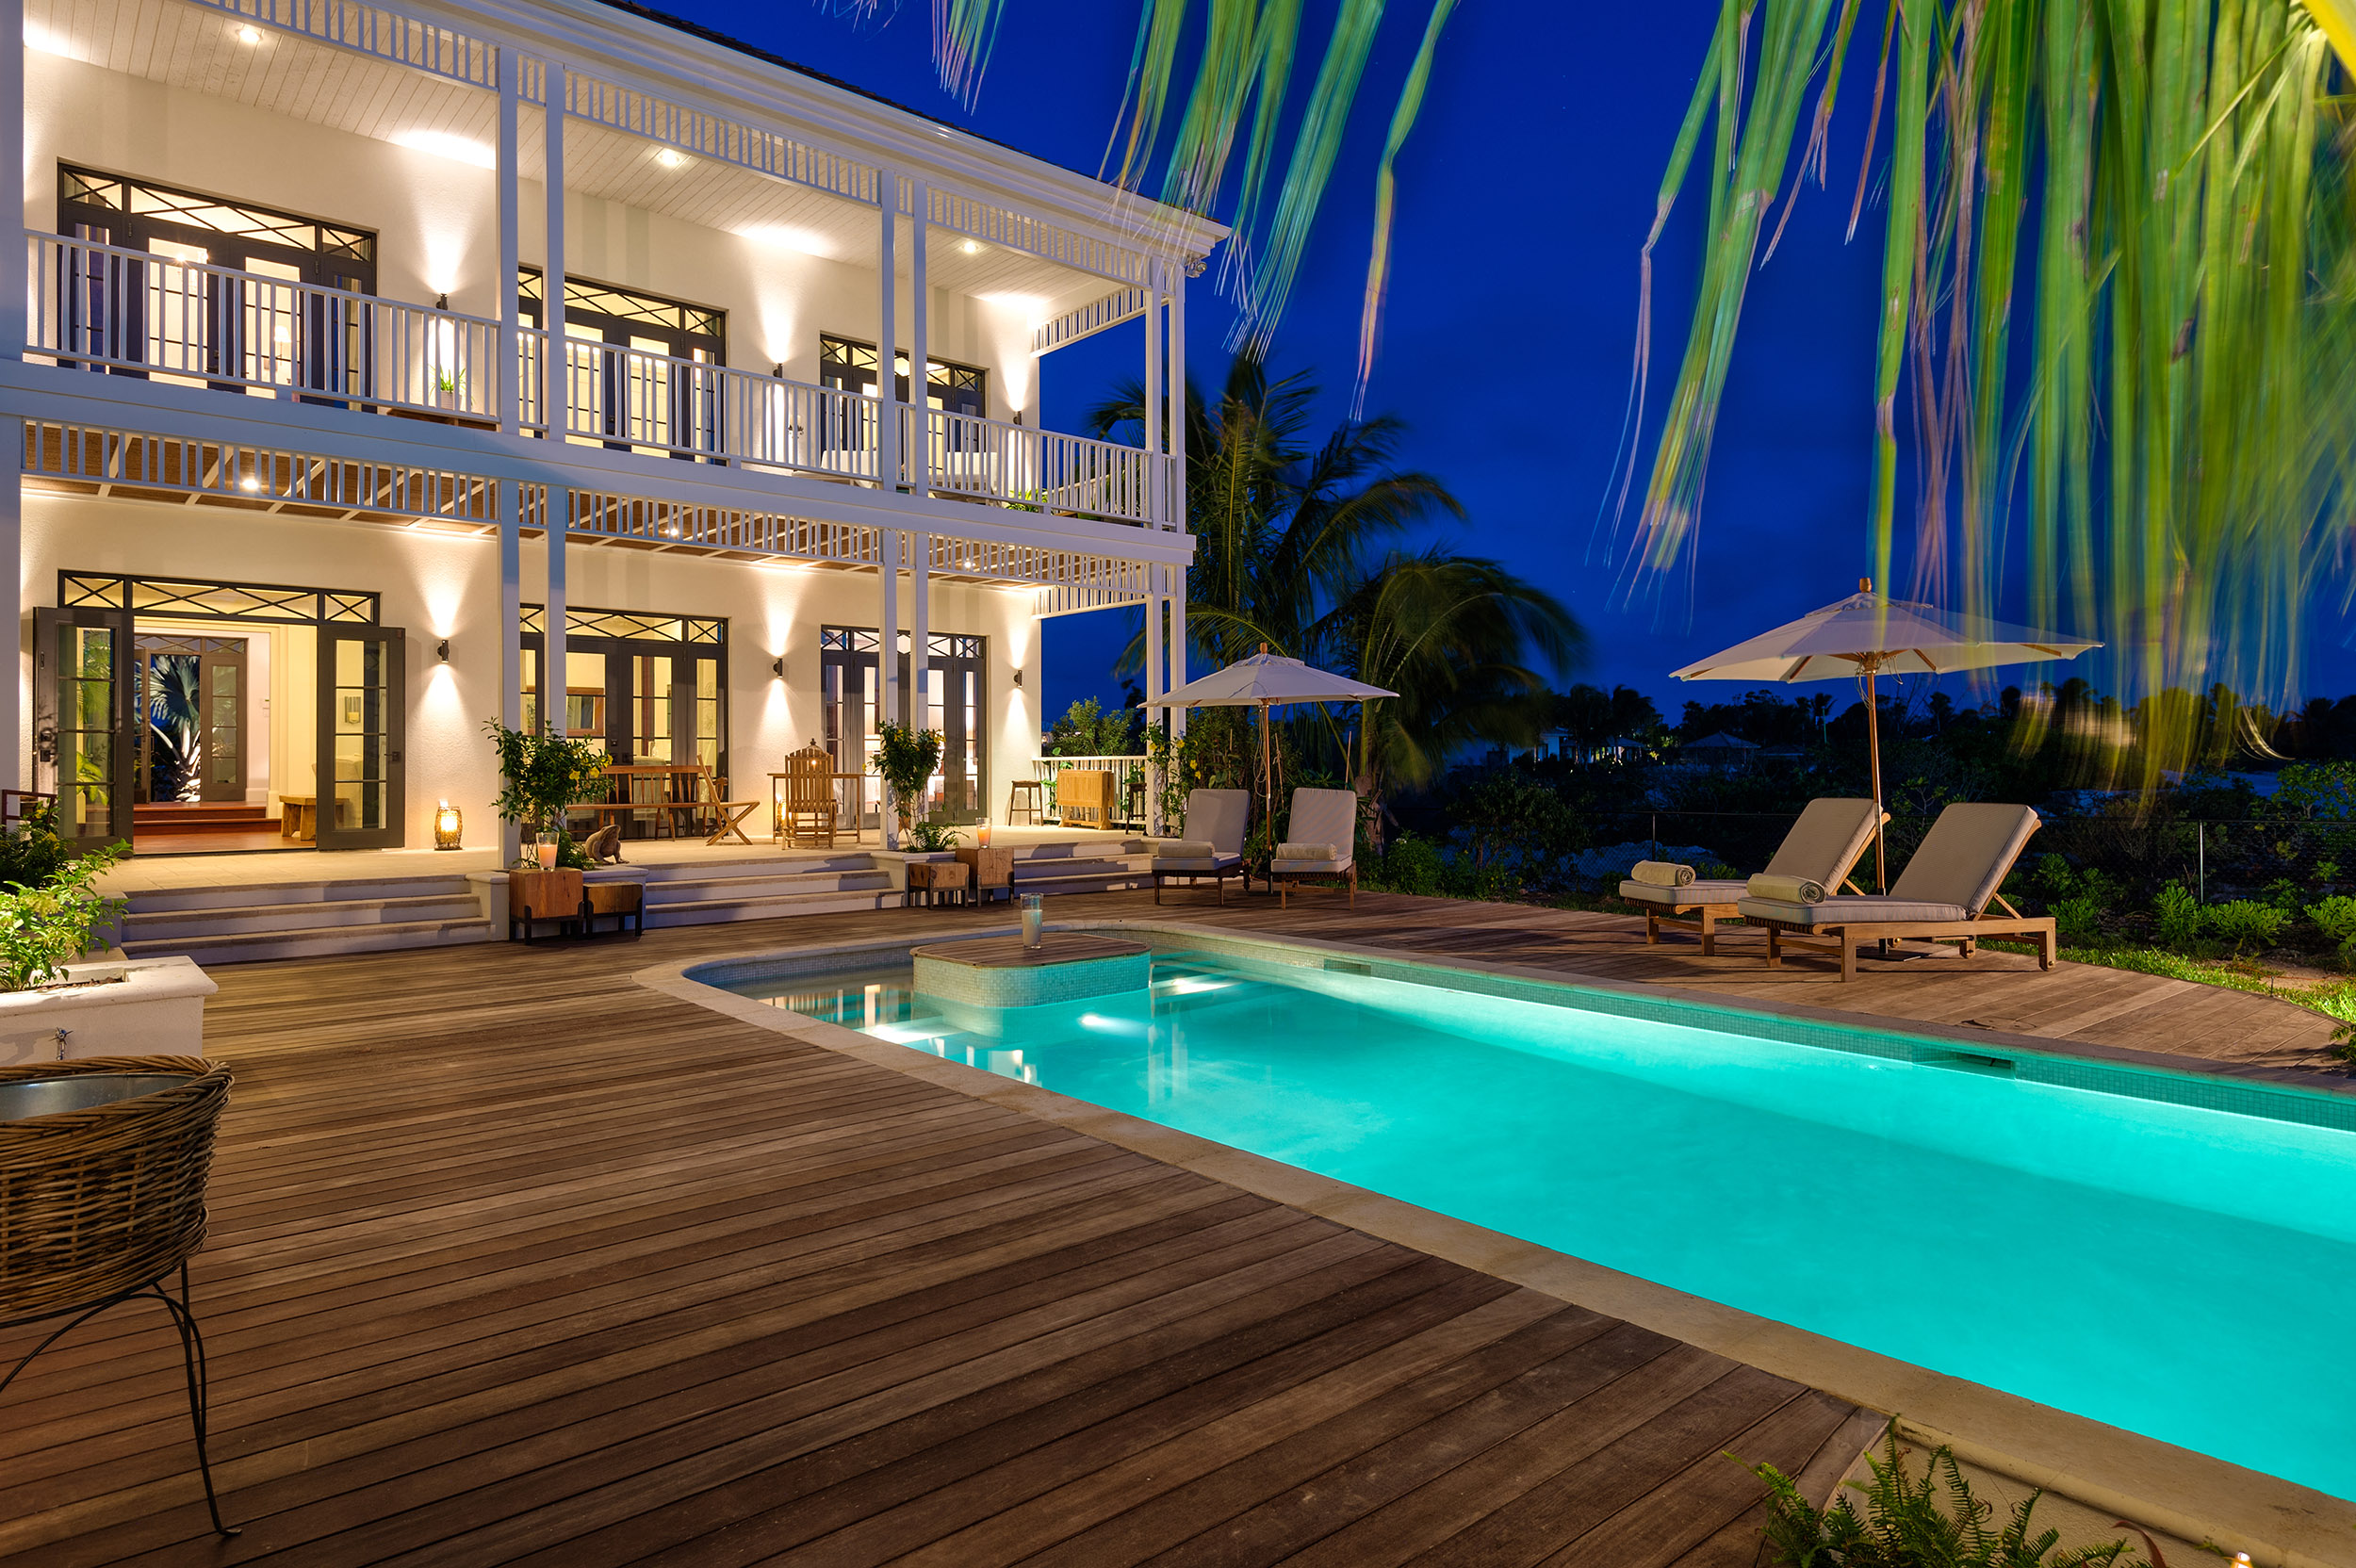 Saving Grace - evening view of the pool and deck areas